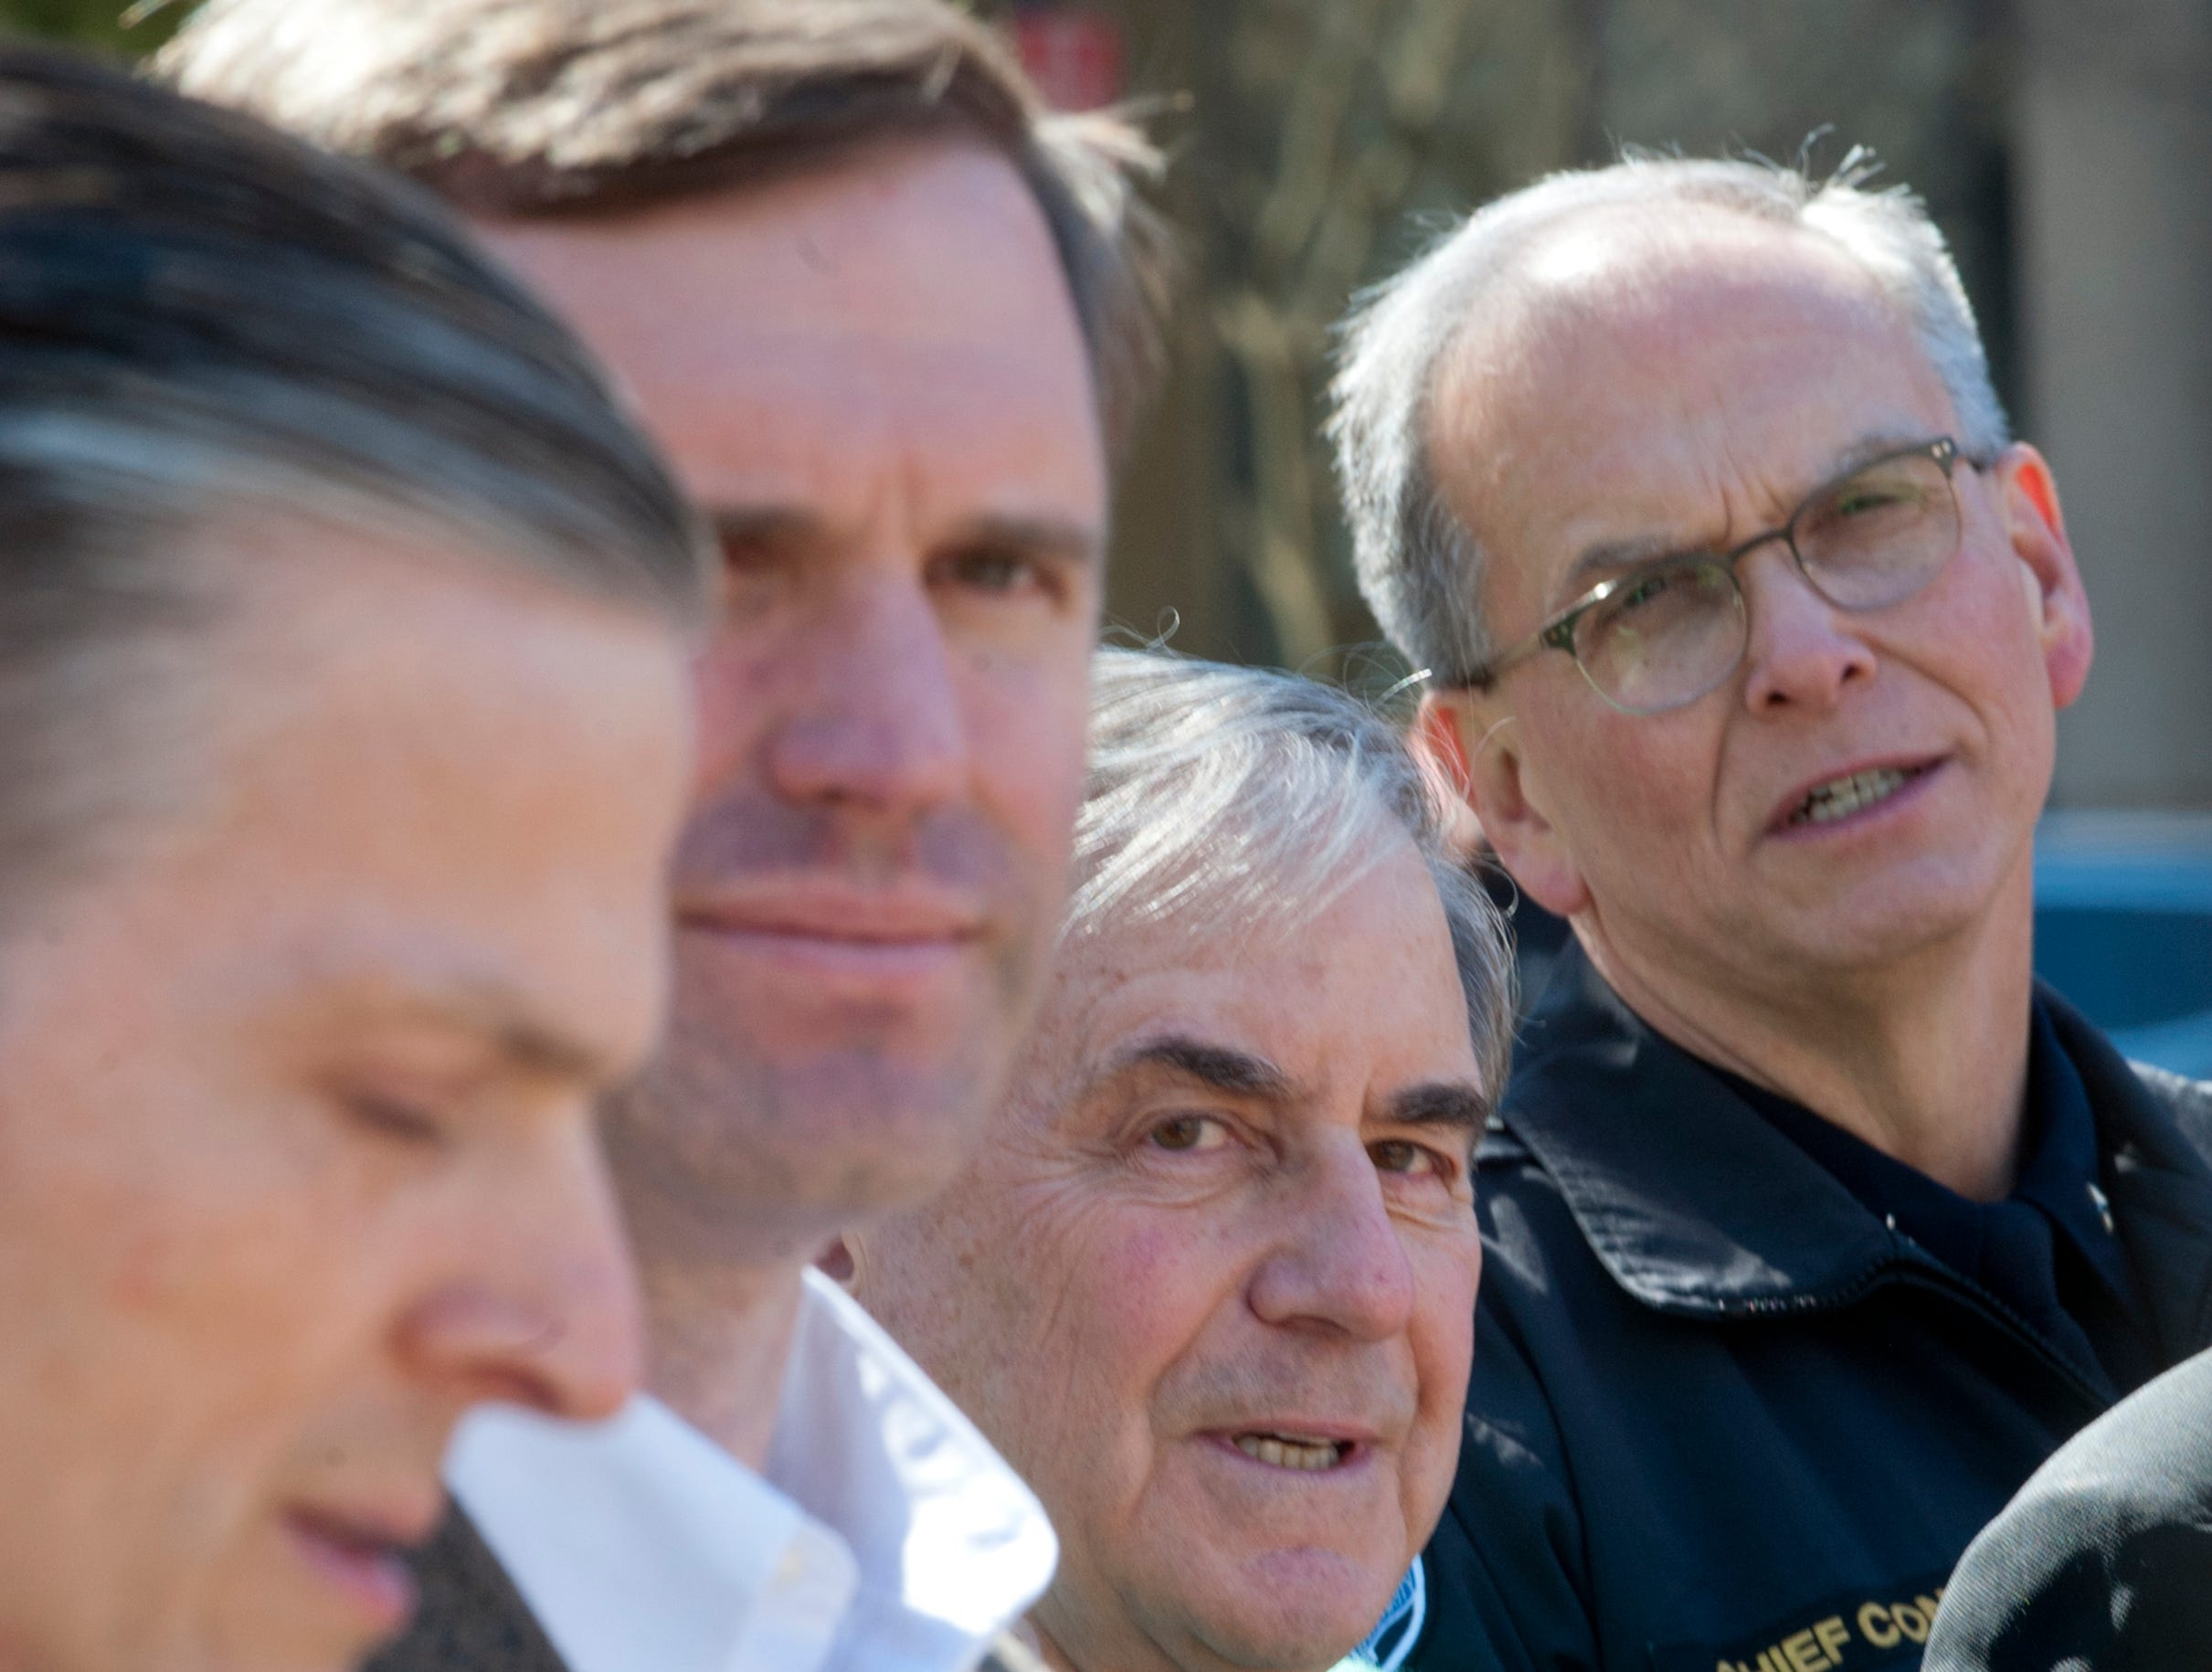 L-R: FBI Special Agent In Charge James Robert.Brown , Kentucky State Attorney General Andy Beshear, U.S. Representative John Yarmuth (D-Louisville)  and Louisville Metro Police Chief Steve Conrad listen to a speaker during the rally.